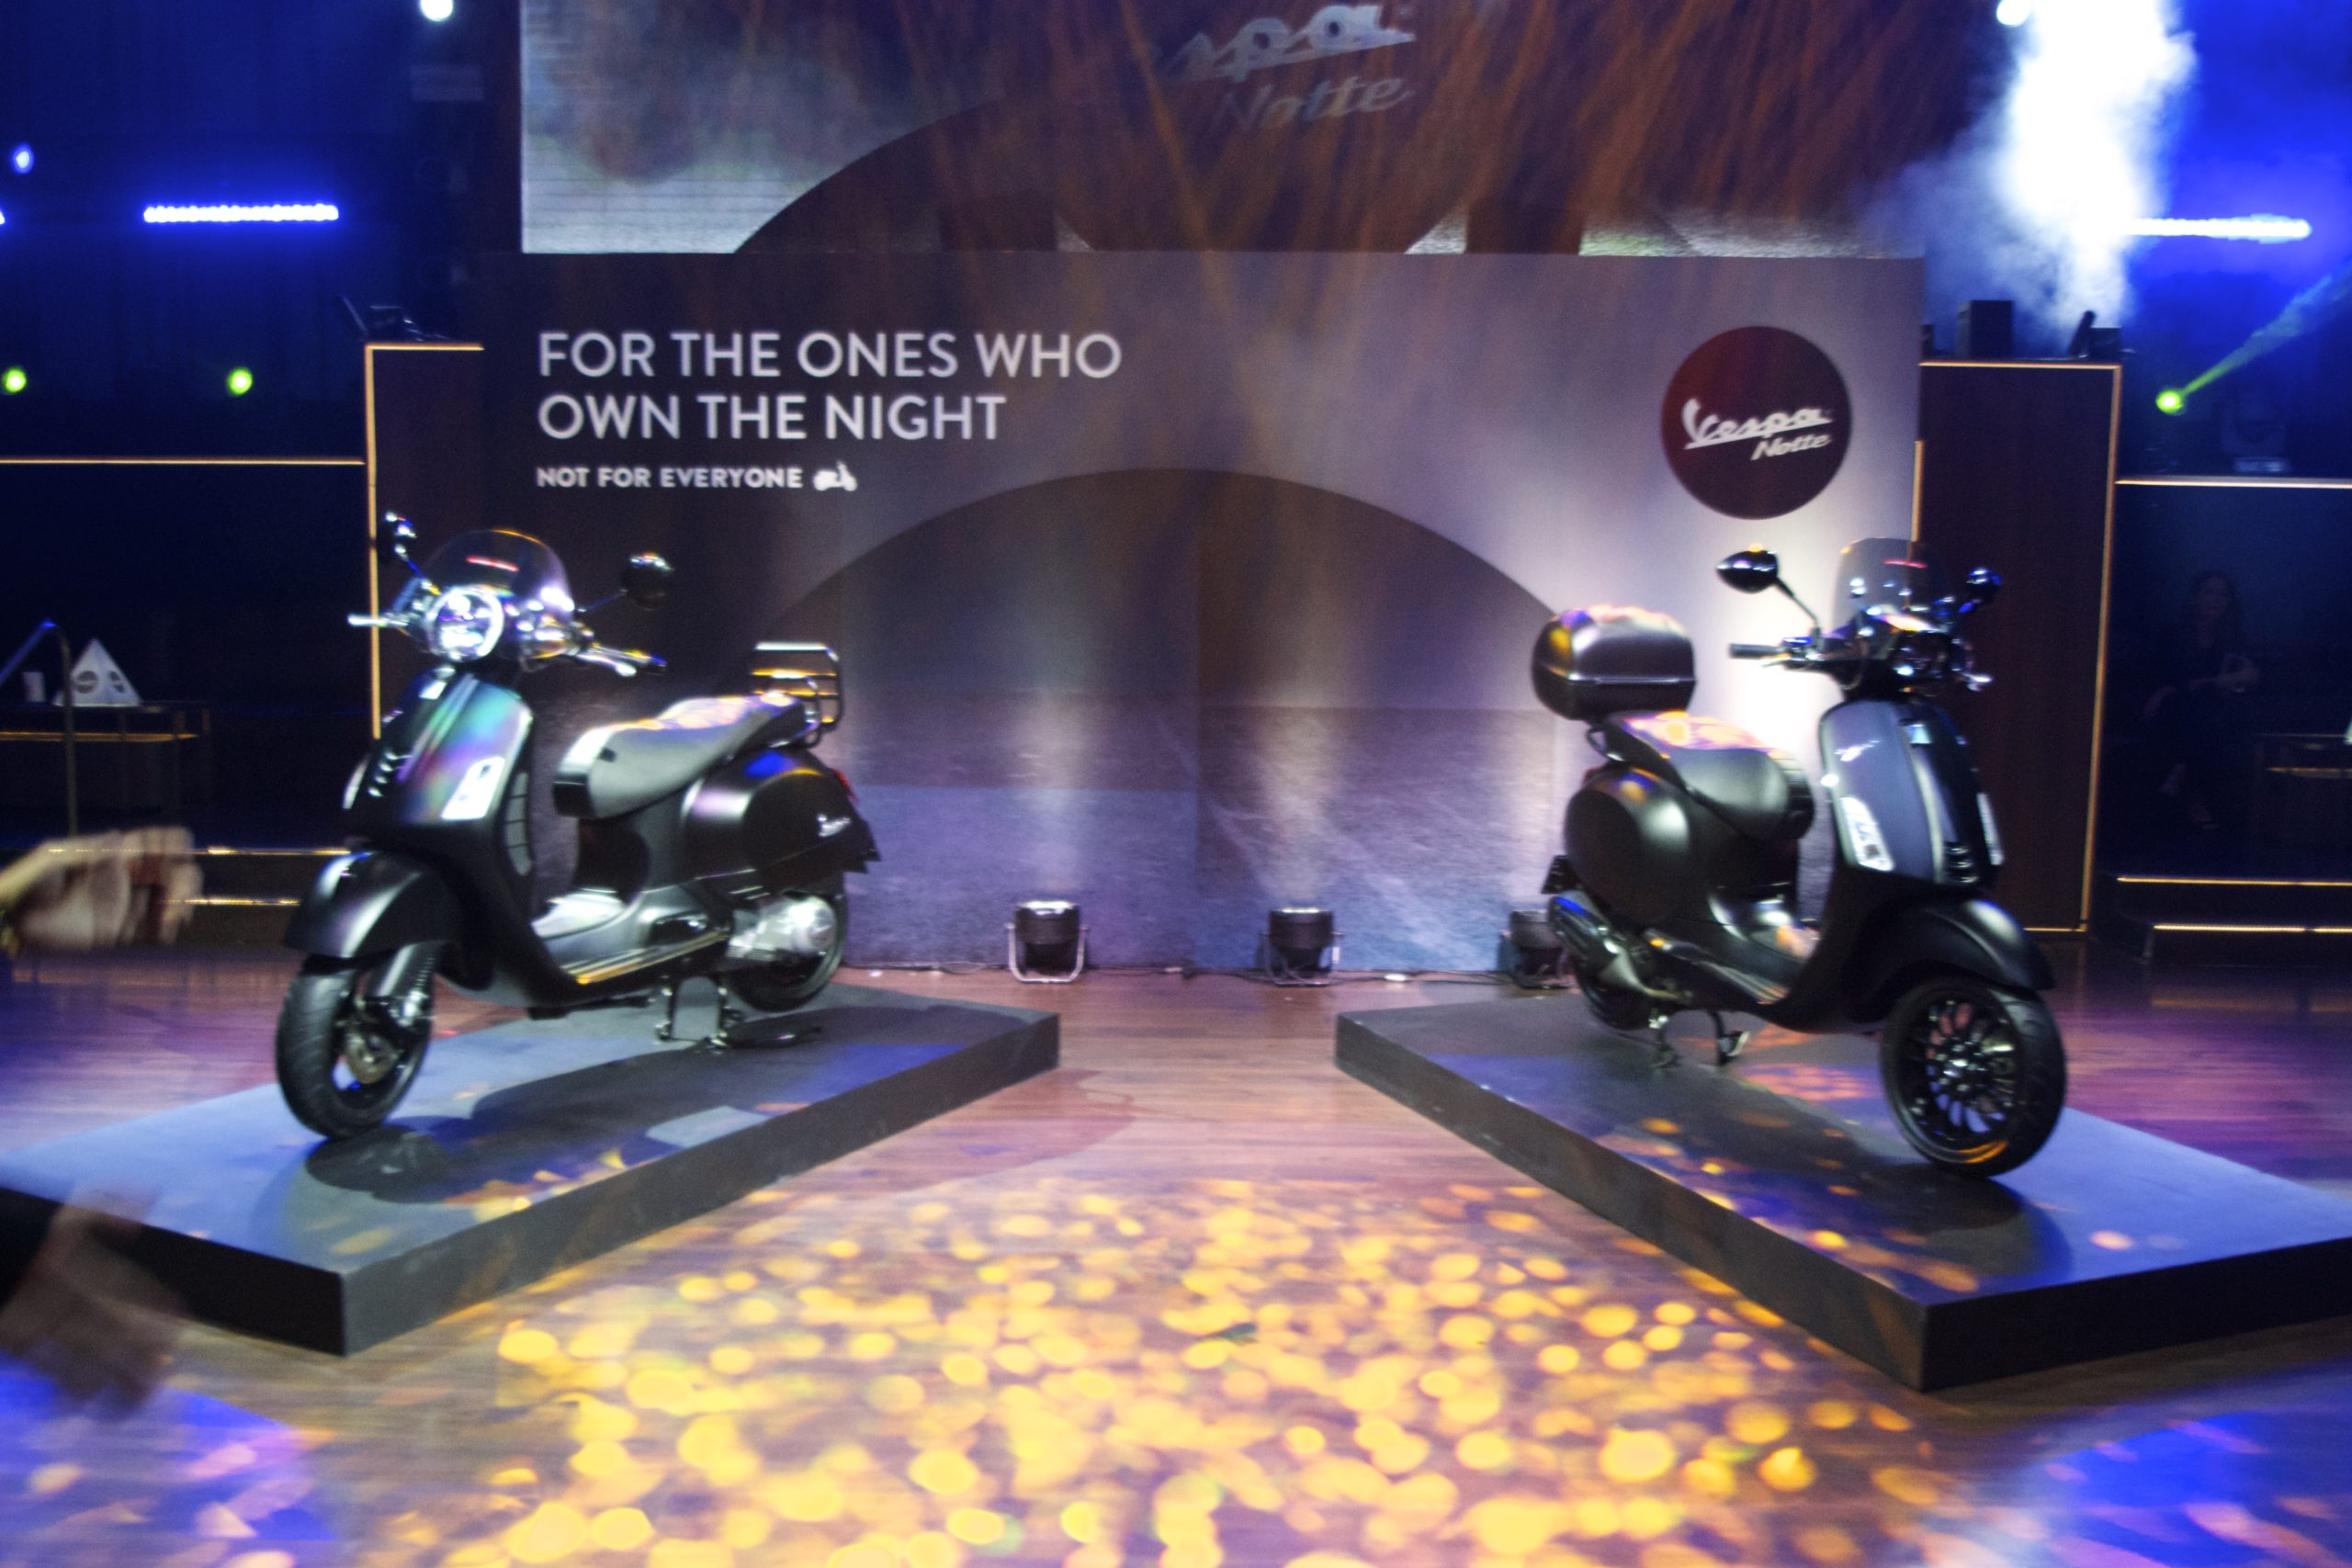 Vespa Philippines brandishes its newest and elegant Vespa Notte special series